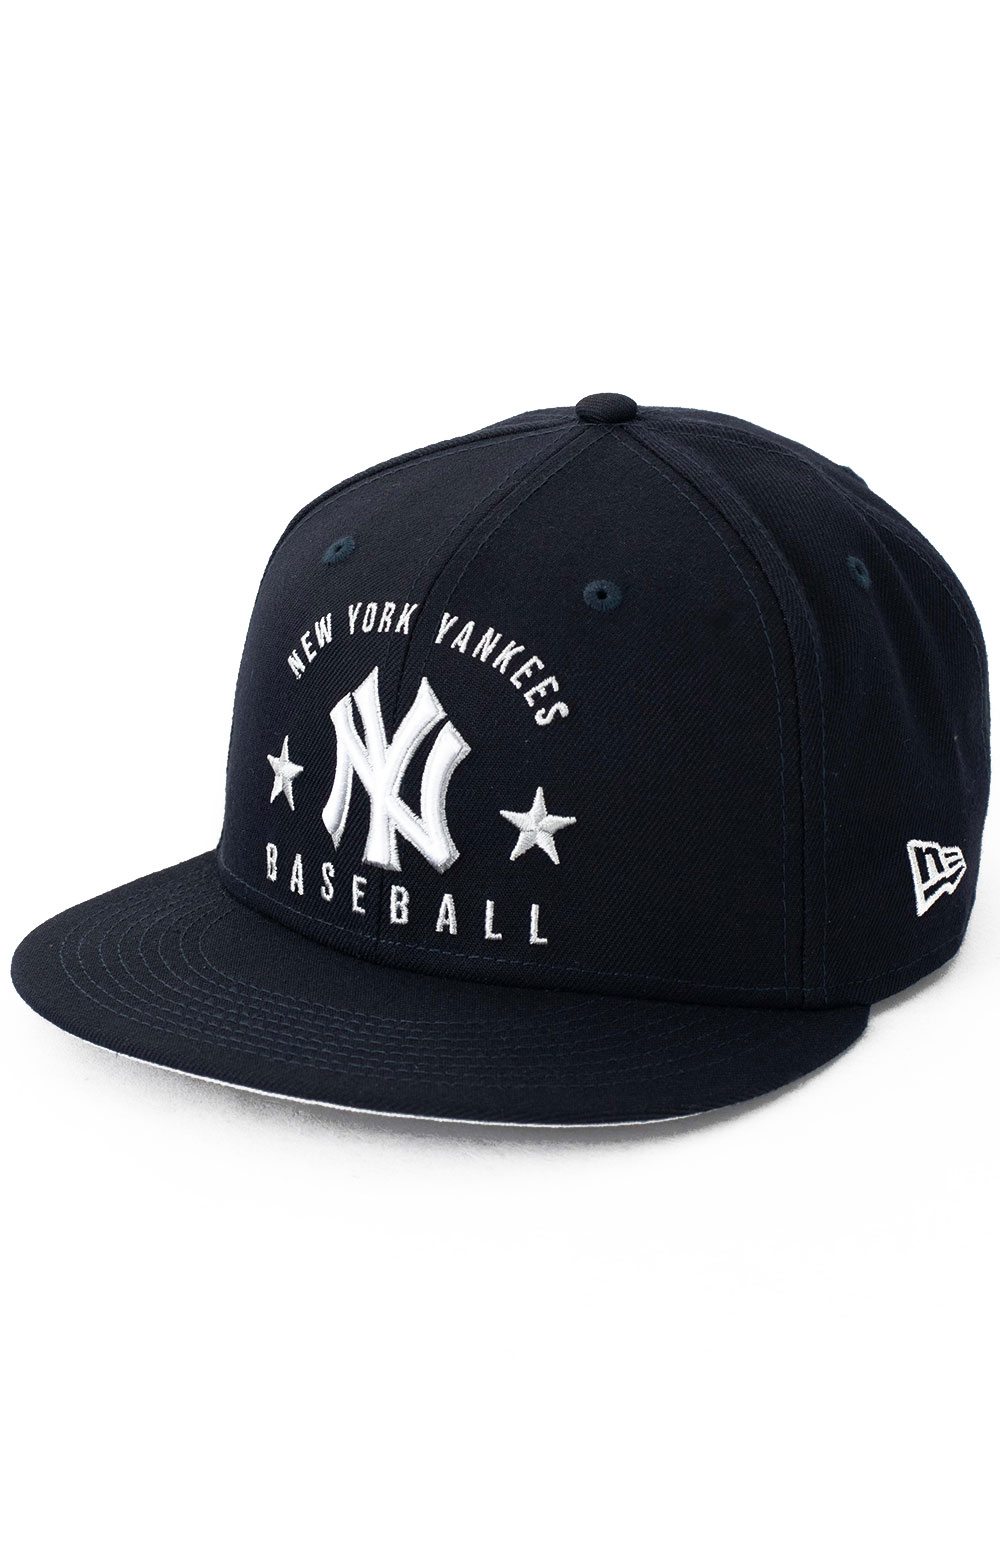 9Fifty Arched NY Yankees Snap-Back Hat